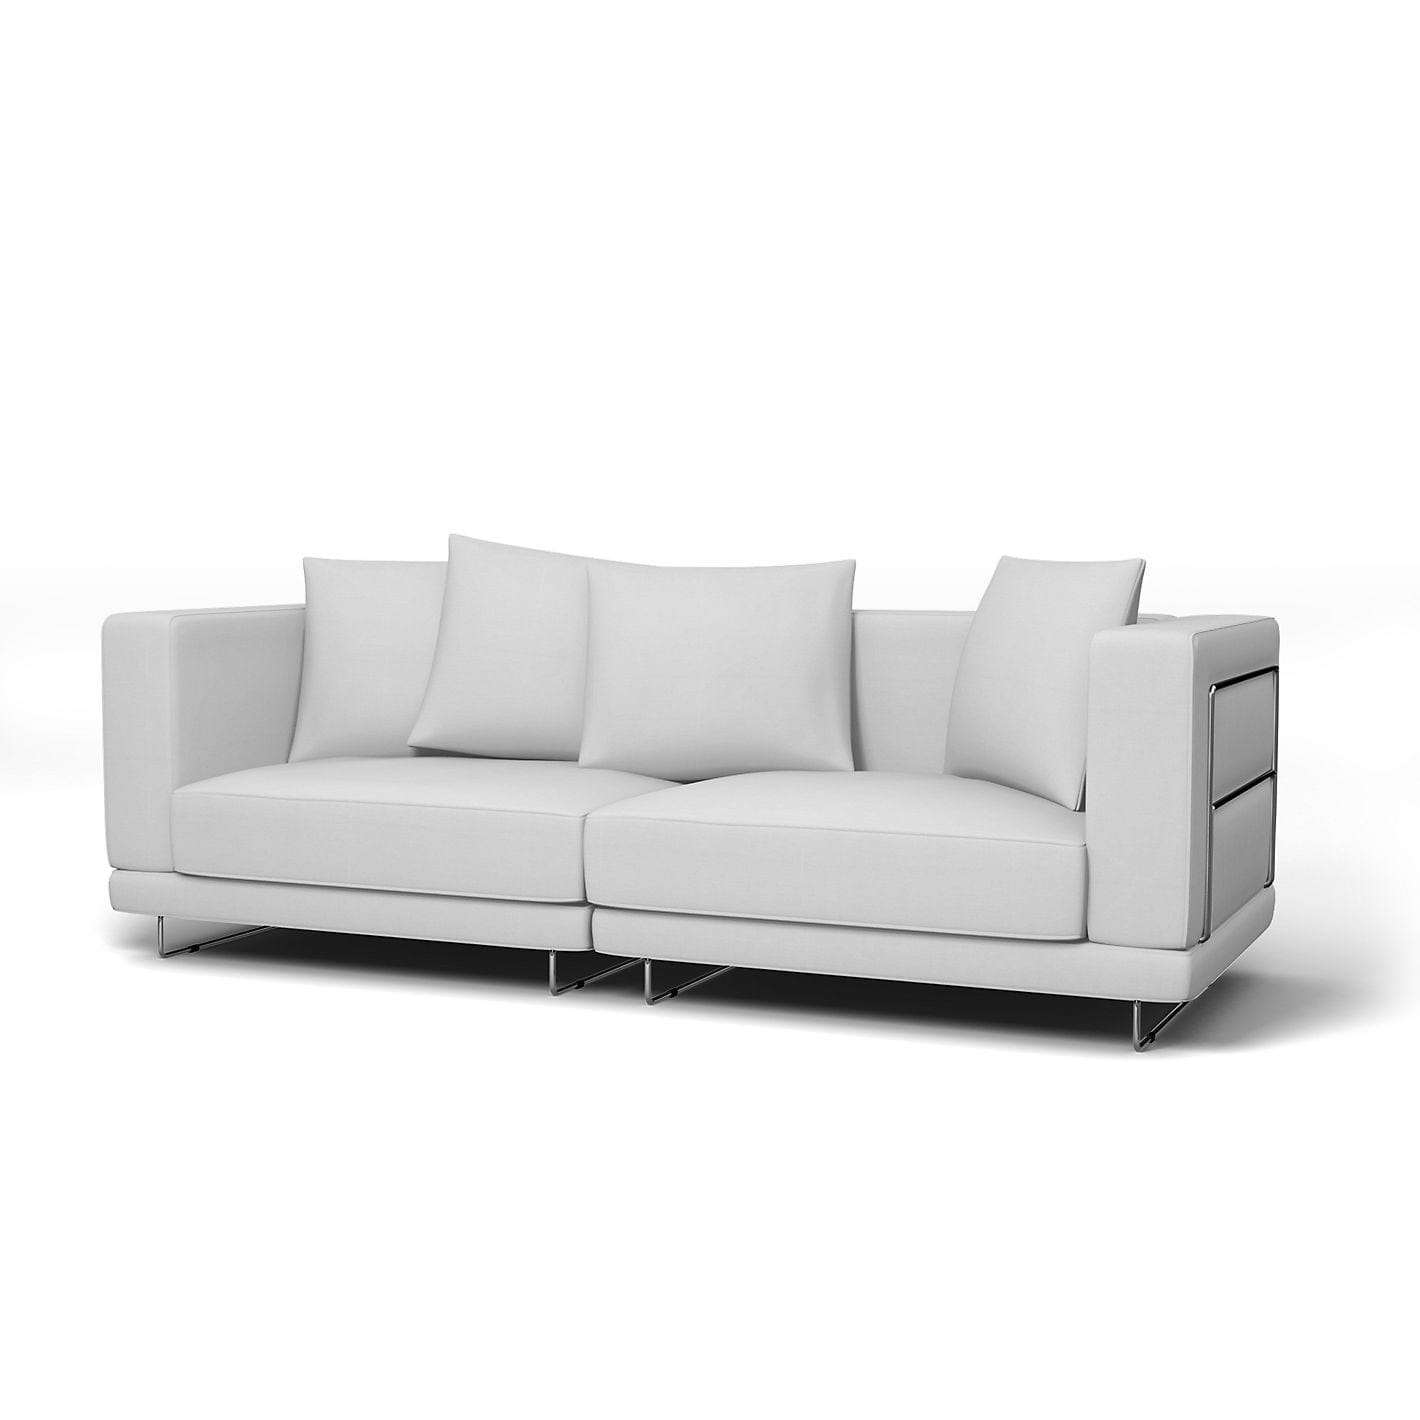 Sofa Covers For Ikea Tylosand Couches